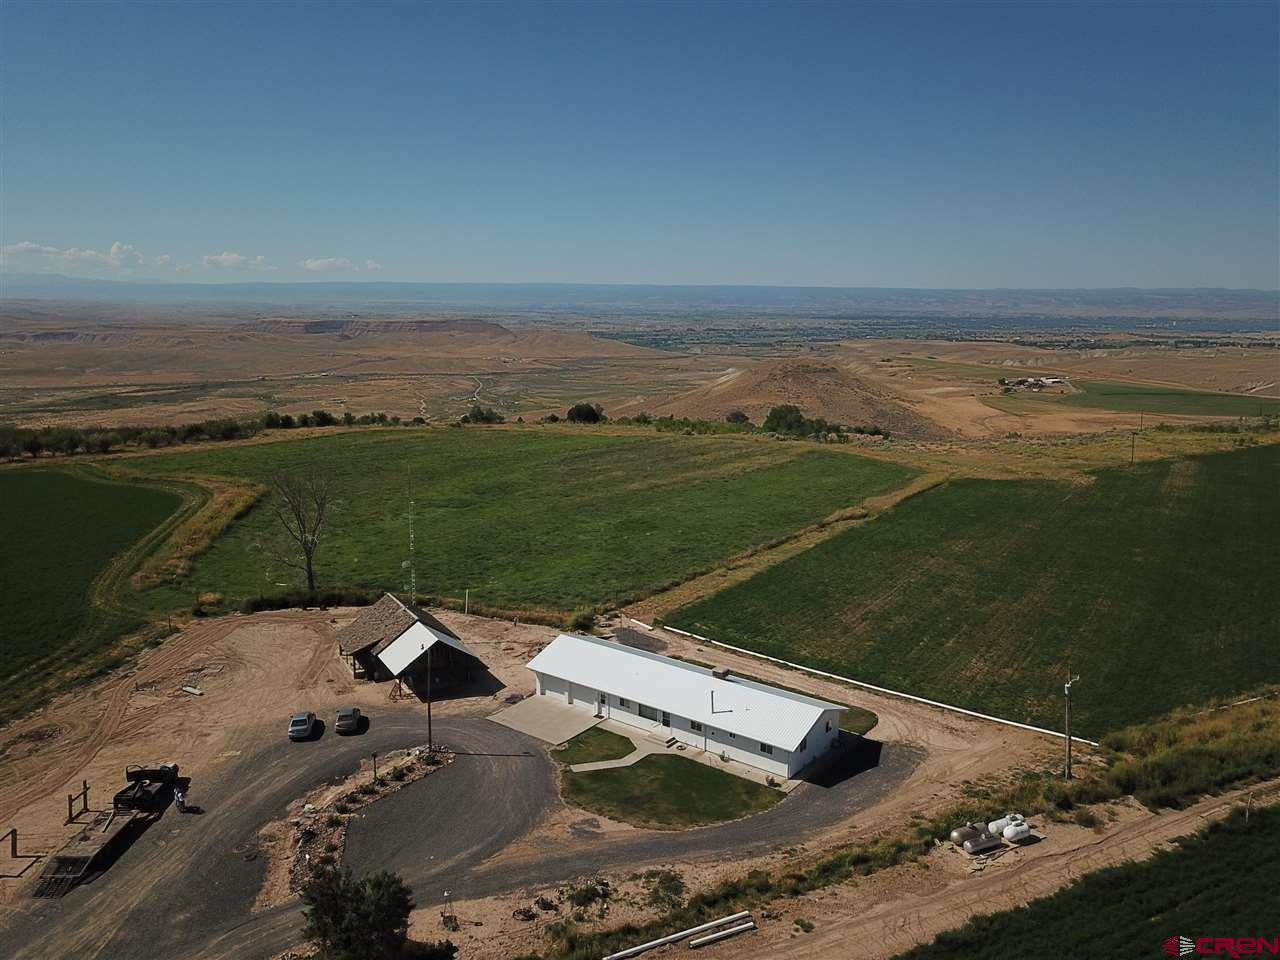 Redlands Mesa ranch with captivating 360 degree views! The end of the road location offers seclusion, privacy and quietness. Approximately 35 irrigated acres with incredible versatility for a variety of crops with ready to go irrigation system in place. Currently a productive hay/alfalfa field with a farm lease that could be continued or terminated. Diverse terrain of the property ranges from flat irrigable ground to sloping with a brush/tree area, making an exciting wildlife opportunity. After a good days work, retreat home to a 3 BD/2.5 BA low maintenance home that was intentionally designed to enjoy the incredible views. Metal roof, over insulated home and two car attached garage. A full unfinished basement makes a wonderful shop or storage room. The NW parcel corner touches BLM. Property is surrounded by other large parcels.